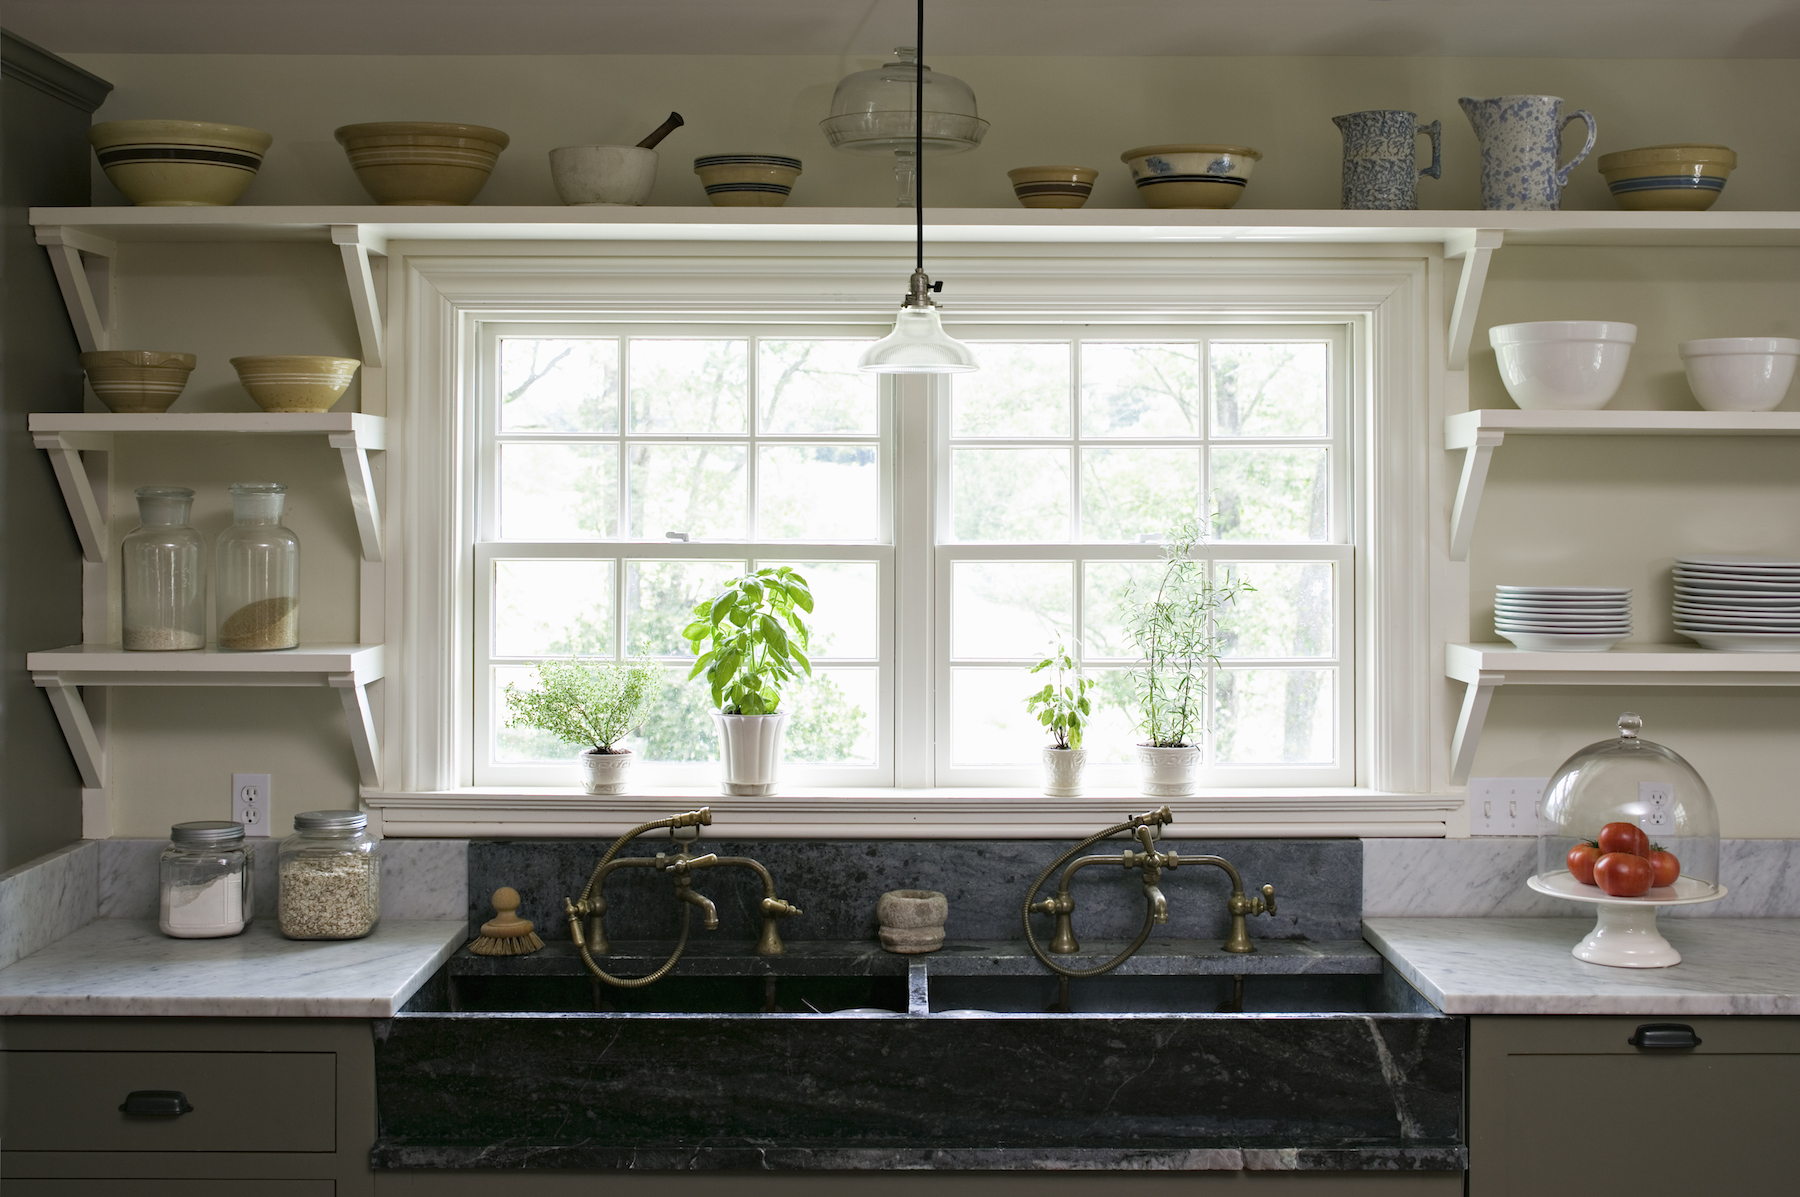 Organized Farmhouse kitchen with open shelving and farmhouse double sink, large window